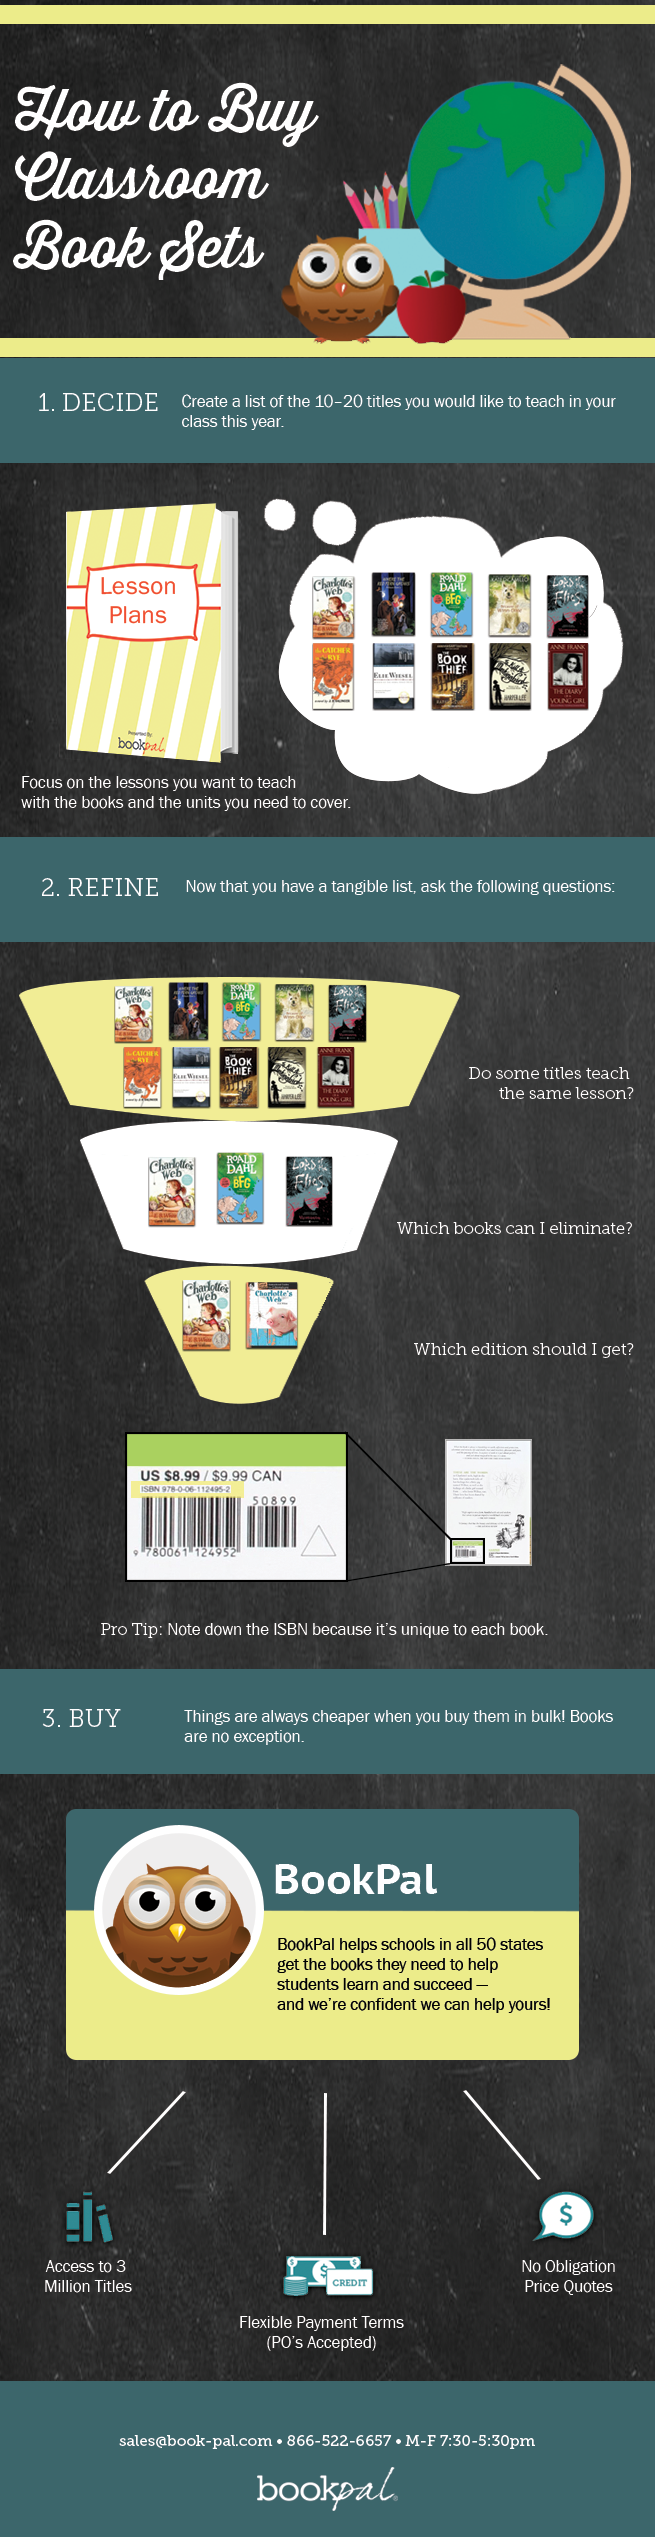 how-to-buy-classroom-book-sets-infographic